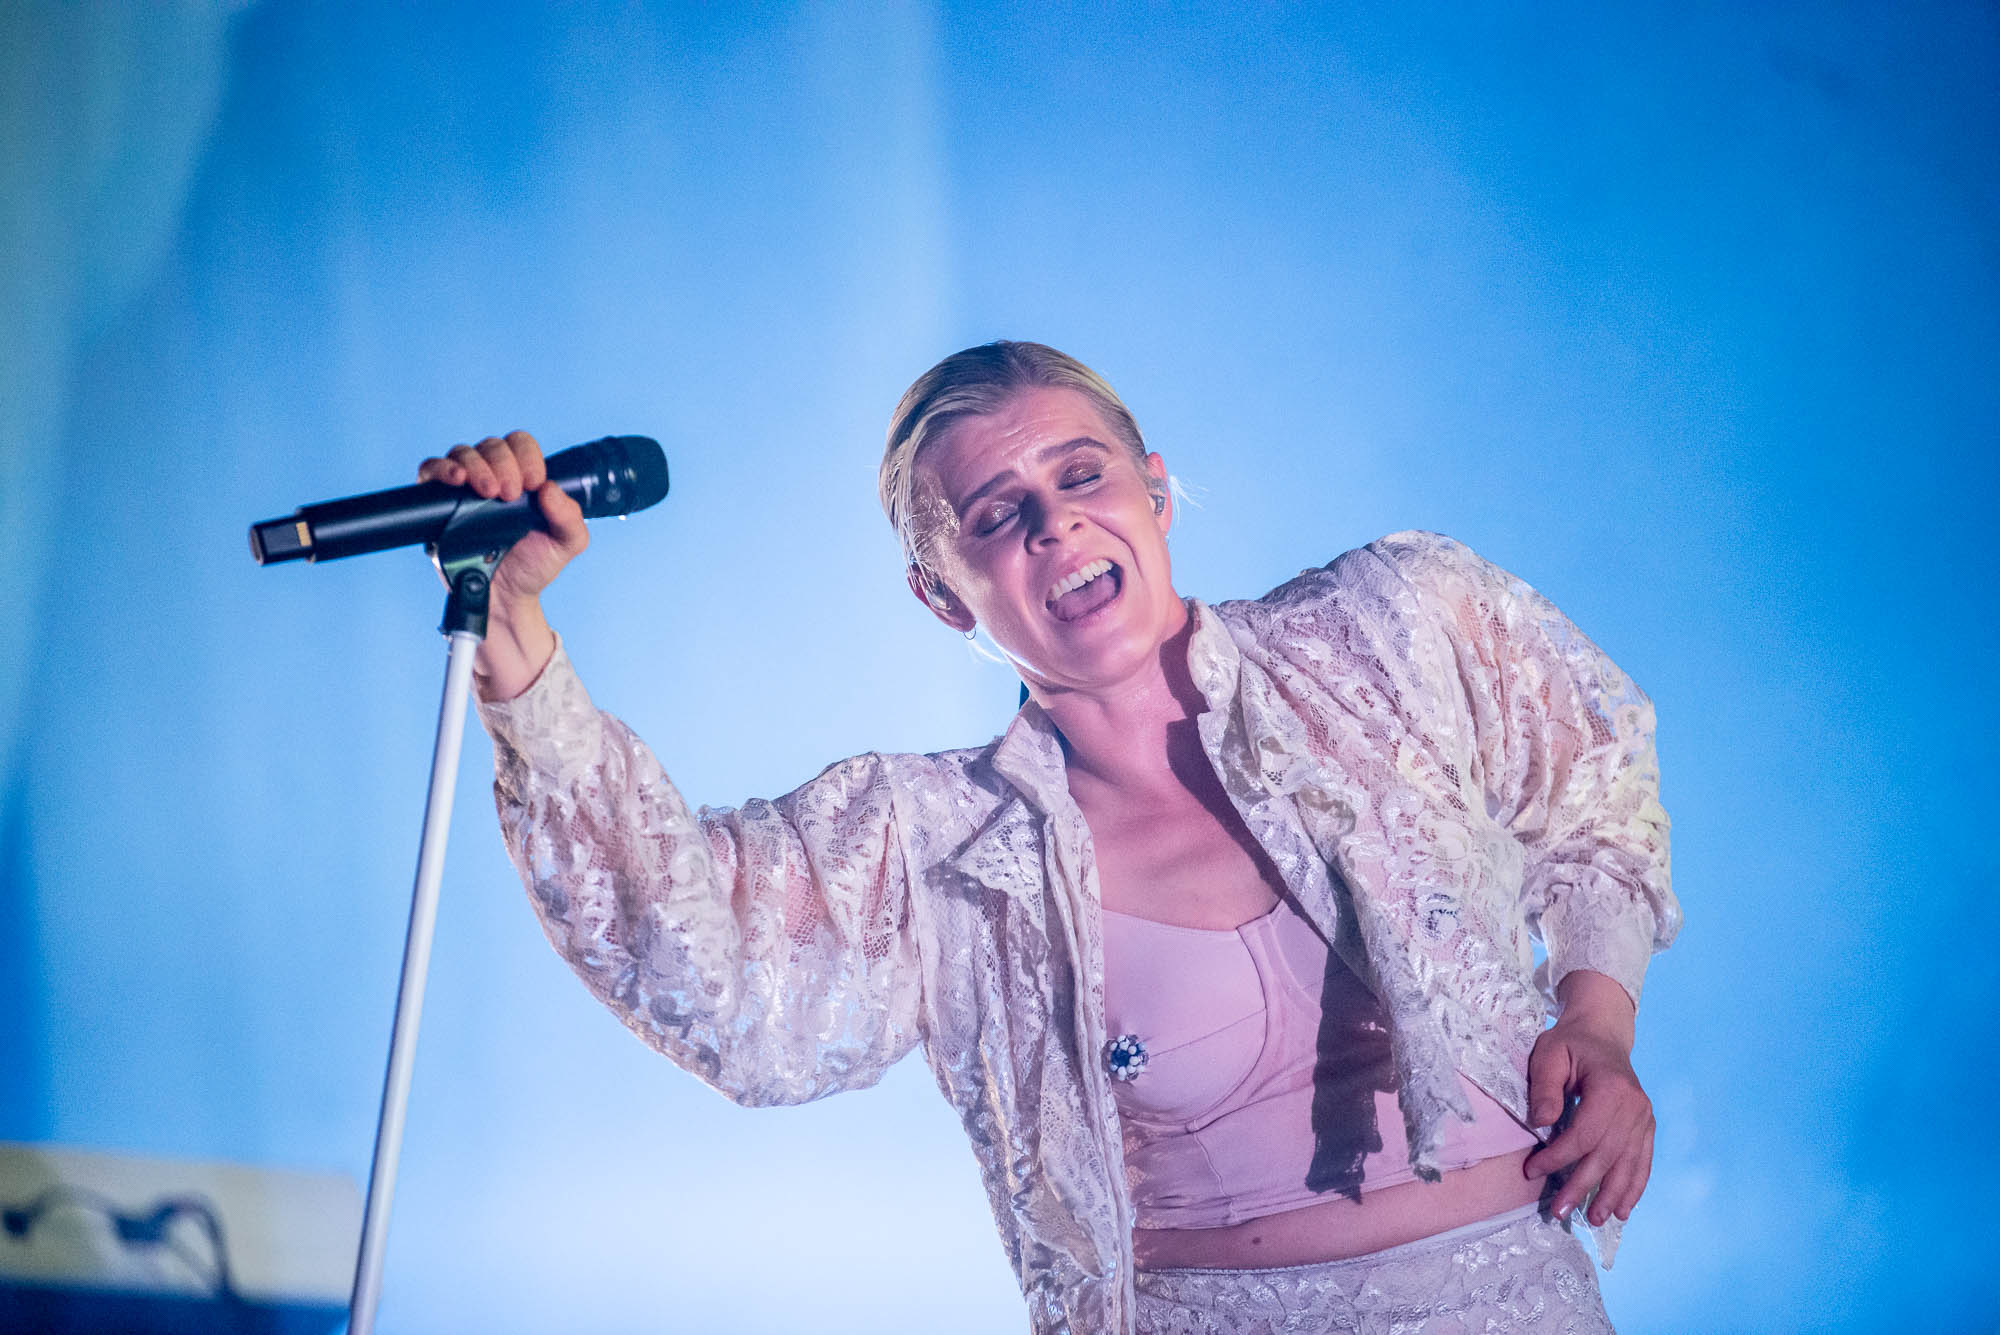 Robyn performing at Barclays Center on Friday, July 19, 2019.